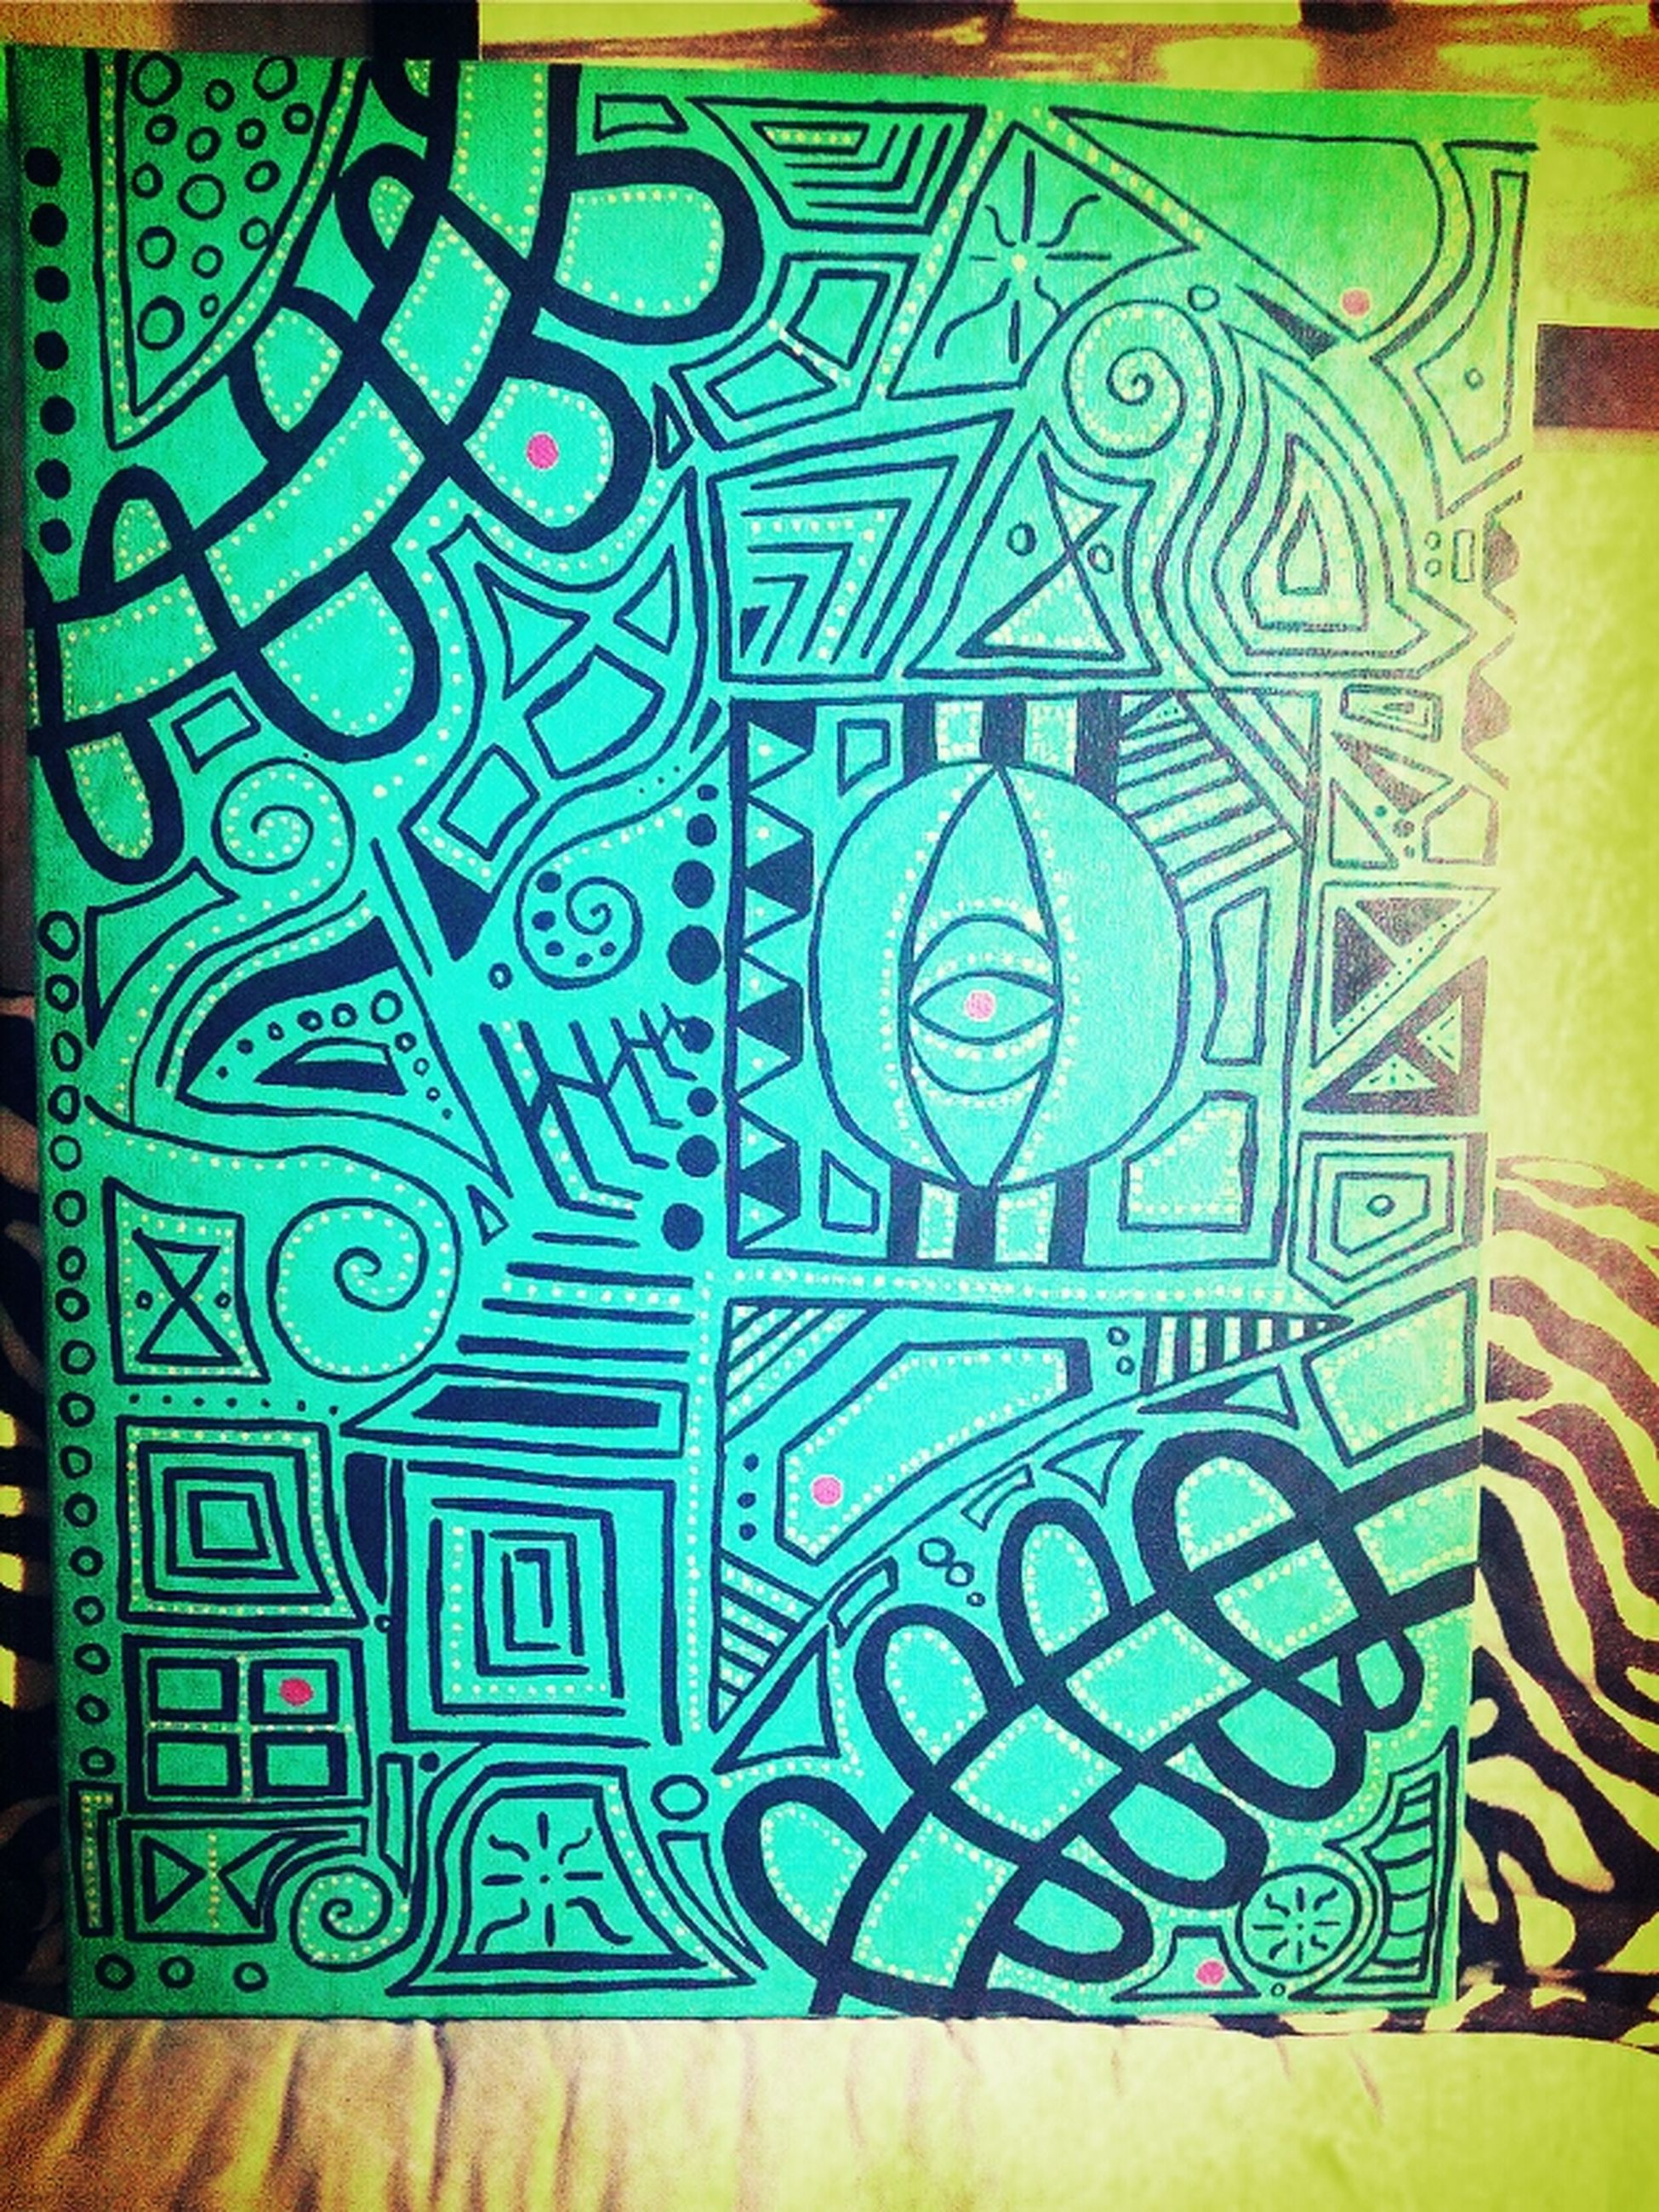 My art, abstract canvas painting